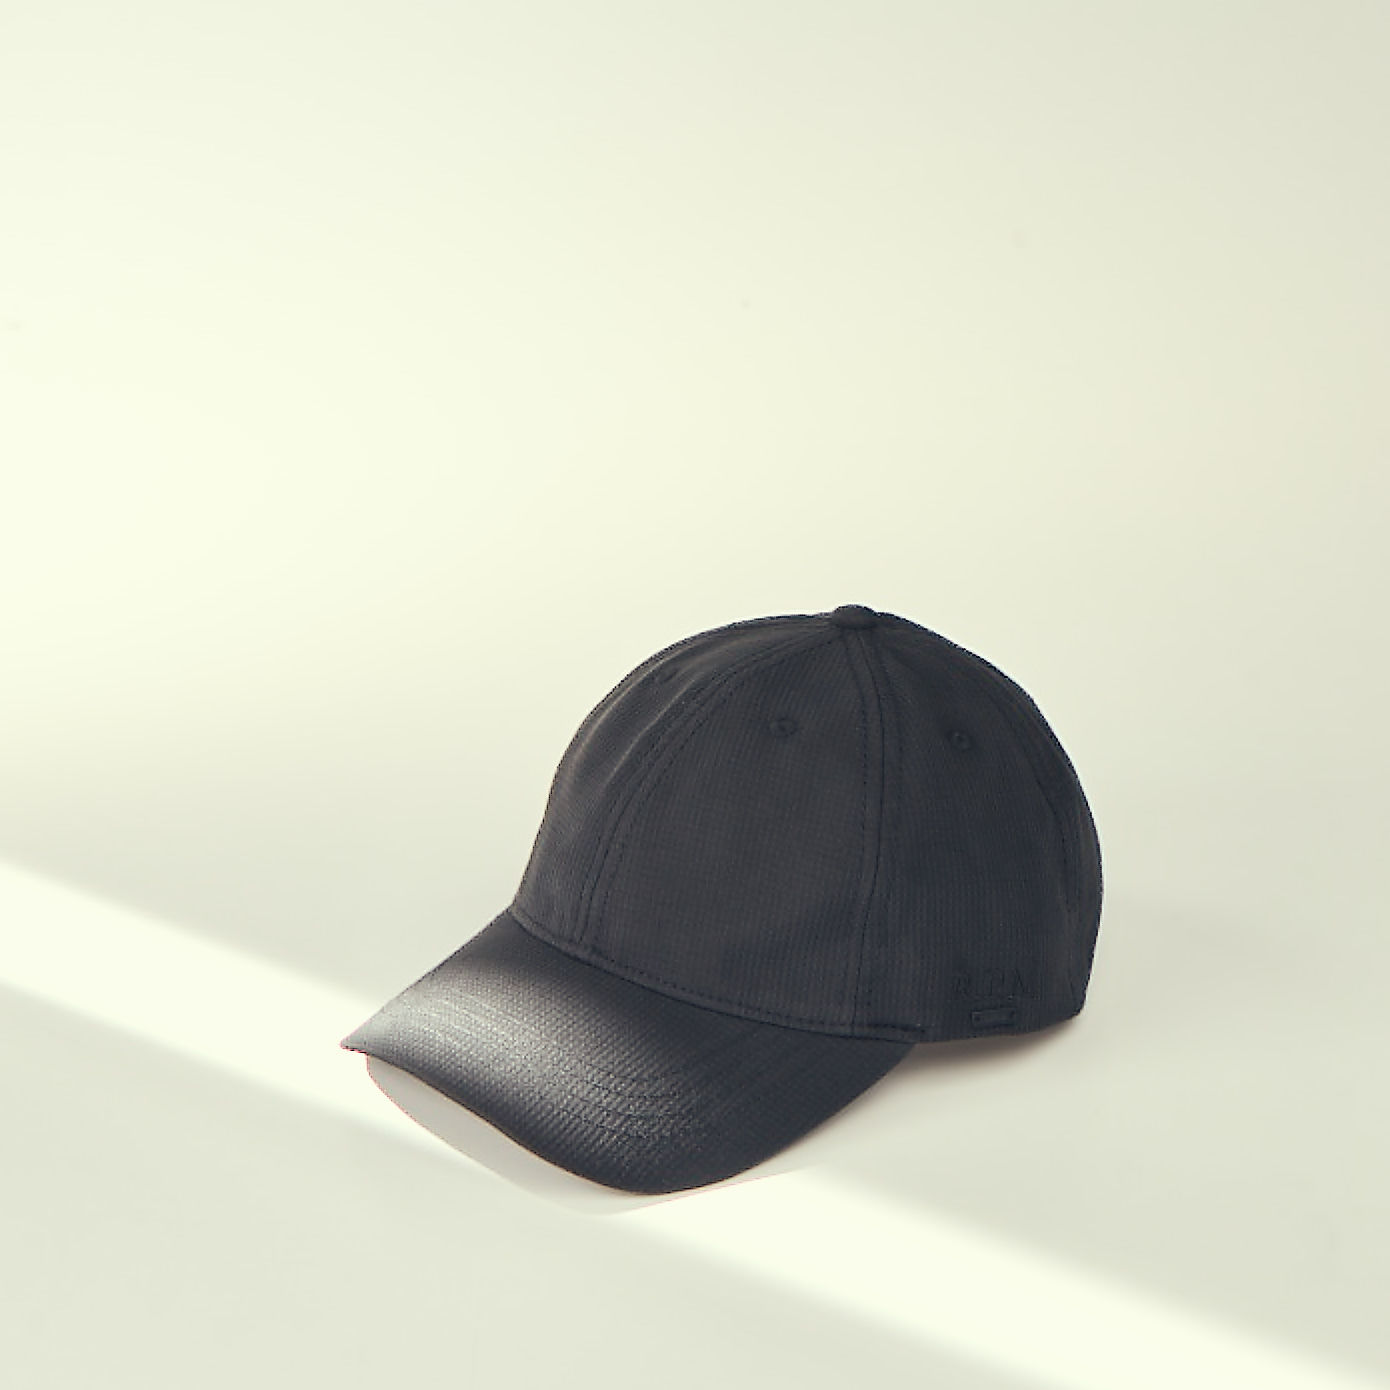 gentleman 2019 summer hats 10